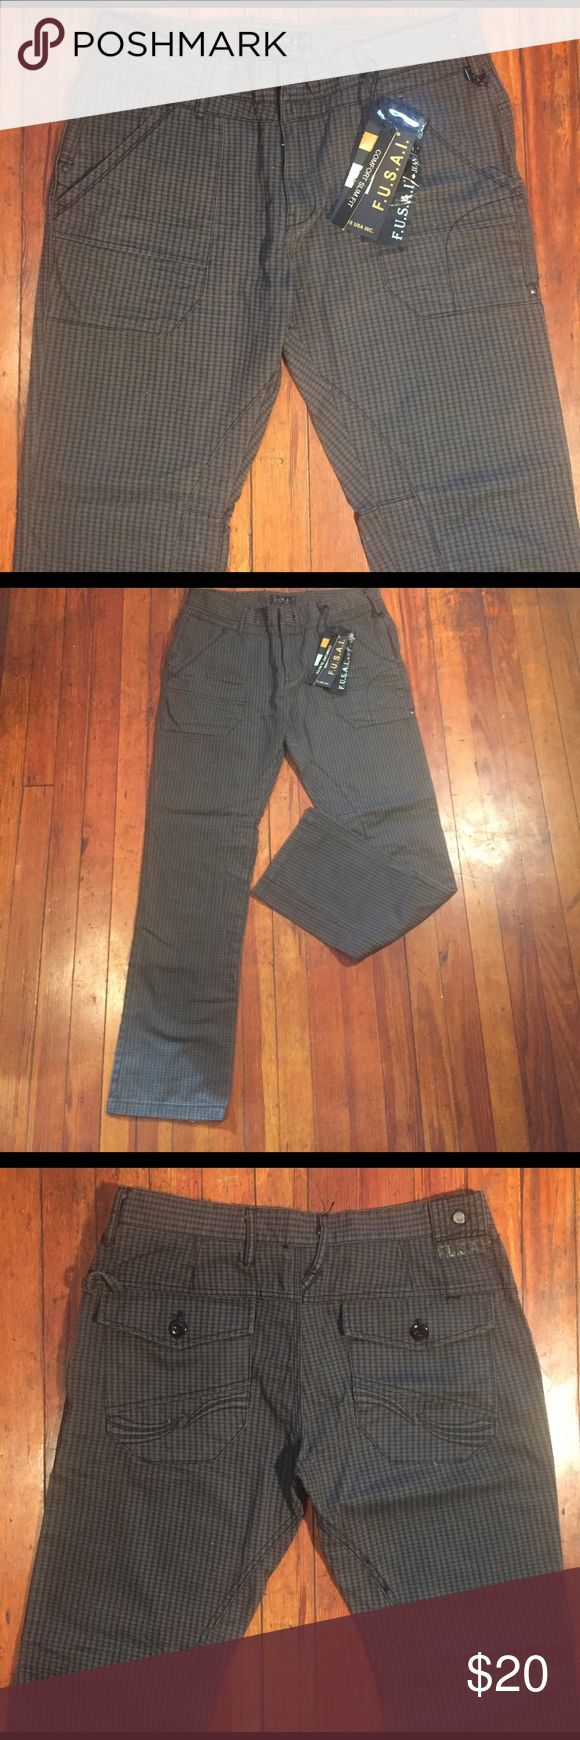 "Men's Grey Jean Style Slim Fit Hipster Pant 34x32 For your consideration is a grey plaid Jean style hipster pant Sz 34x32. (Pant is label wrong on tag and inside at waist, marked 36x34, but Actual measures taken w tape measure indicate 34x32.) Jean features nice stitching/details and are 8"" across cuff. Message with questions and thanks for stopping by. Jeans Slim"